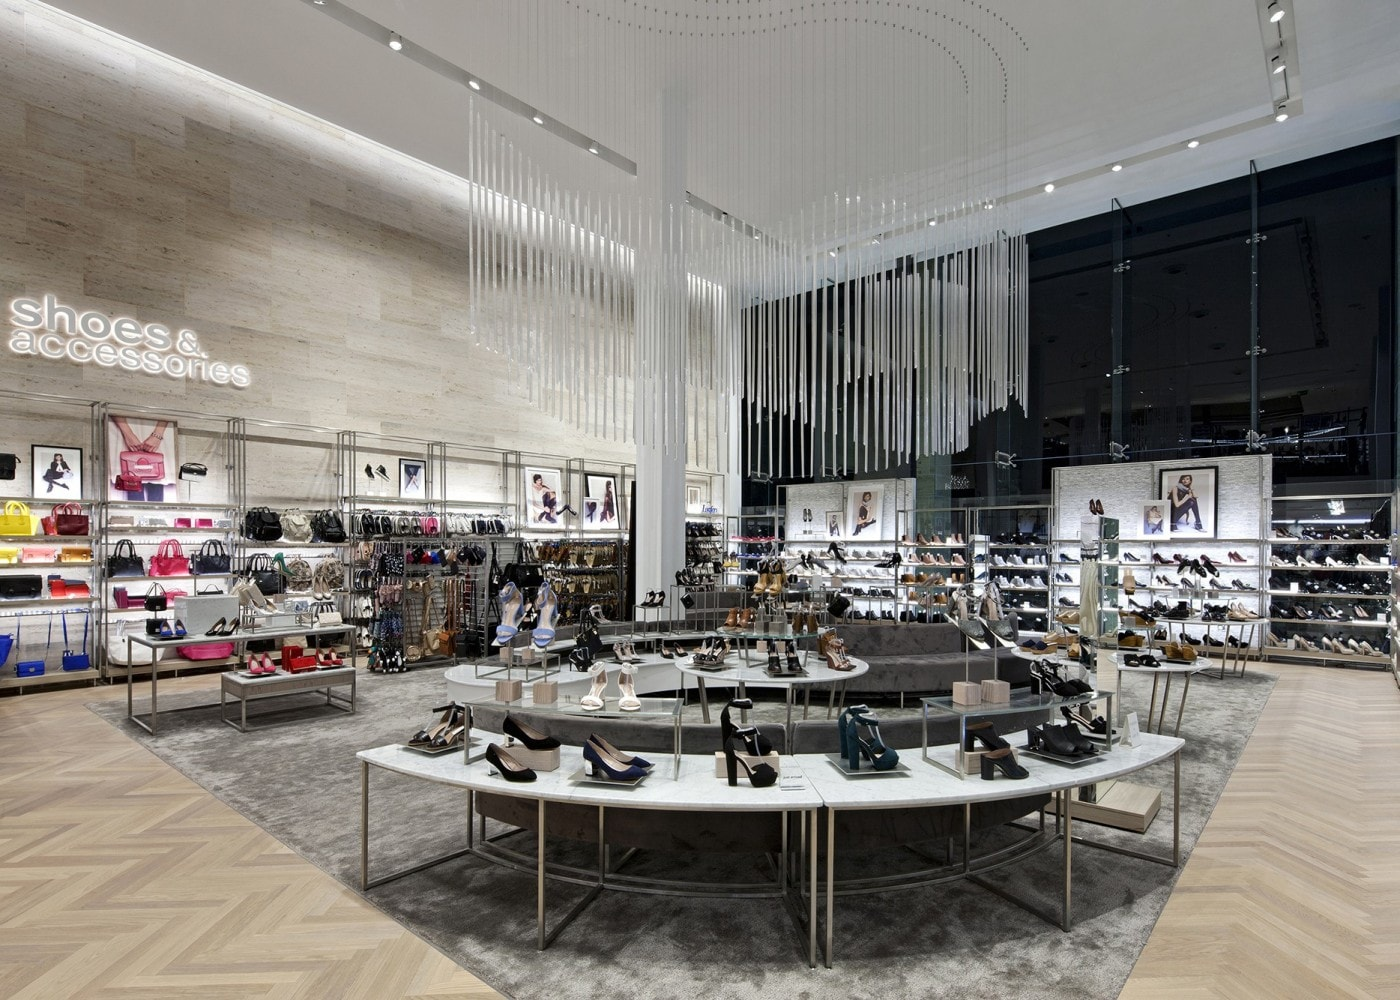 retail lighting design: Next shoes and accessories department